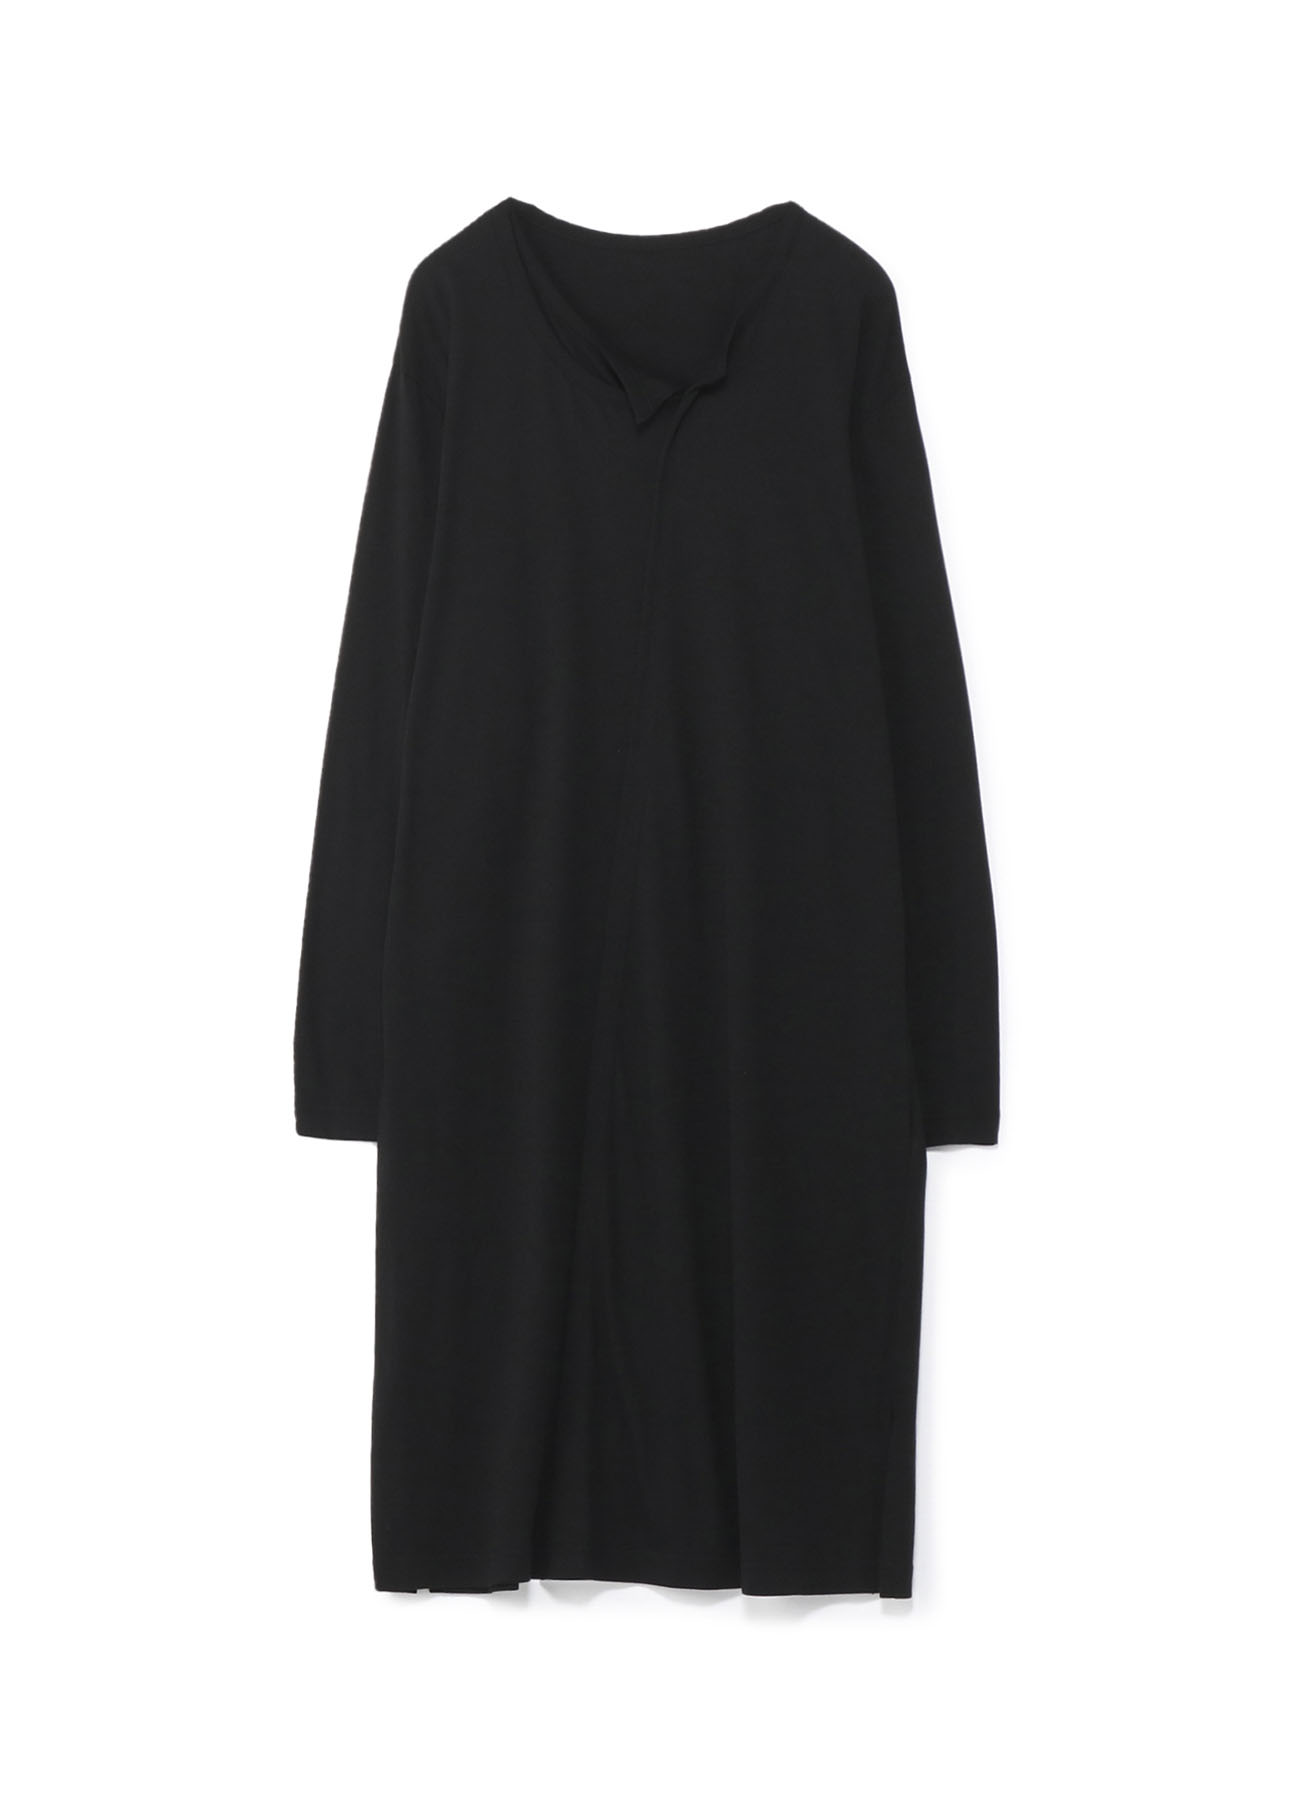 Modal Cotton Double Collar Long T Long Sleeves